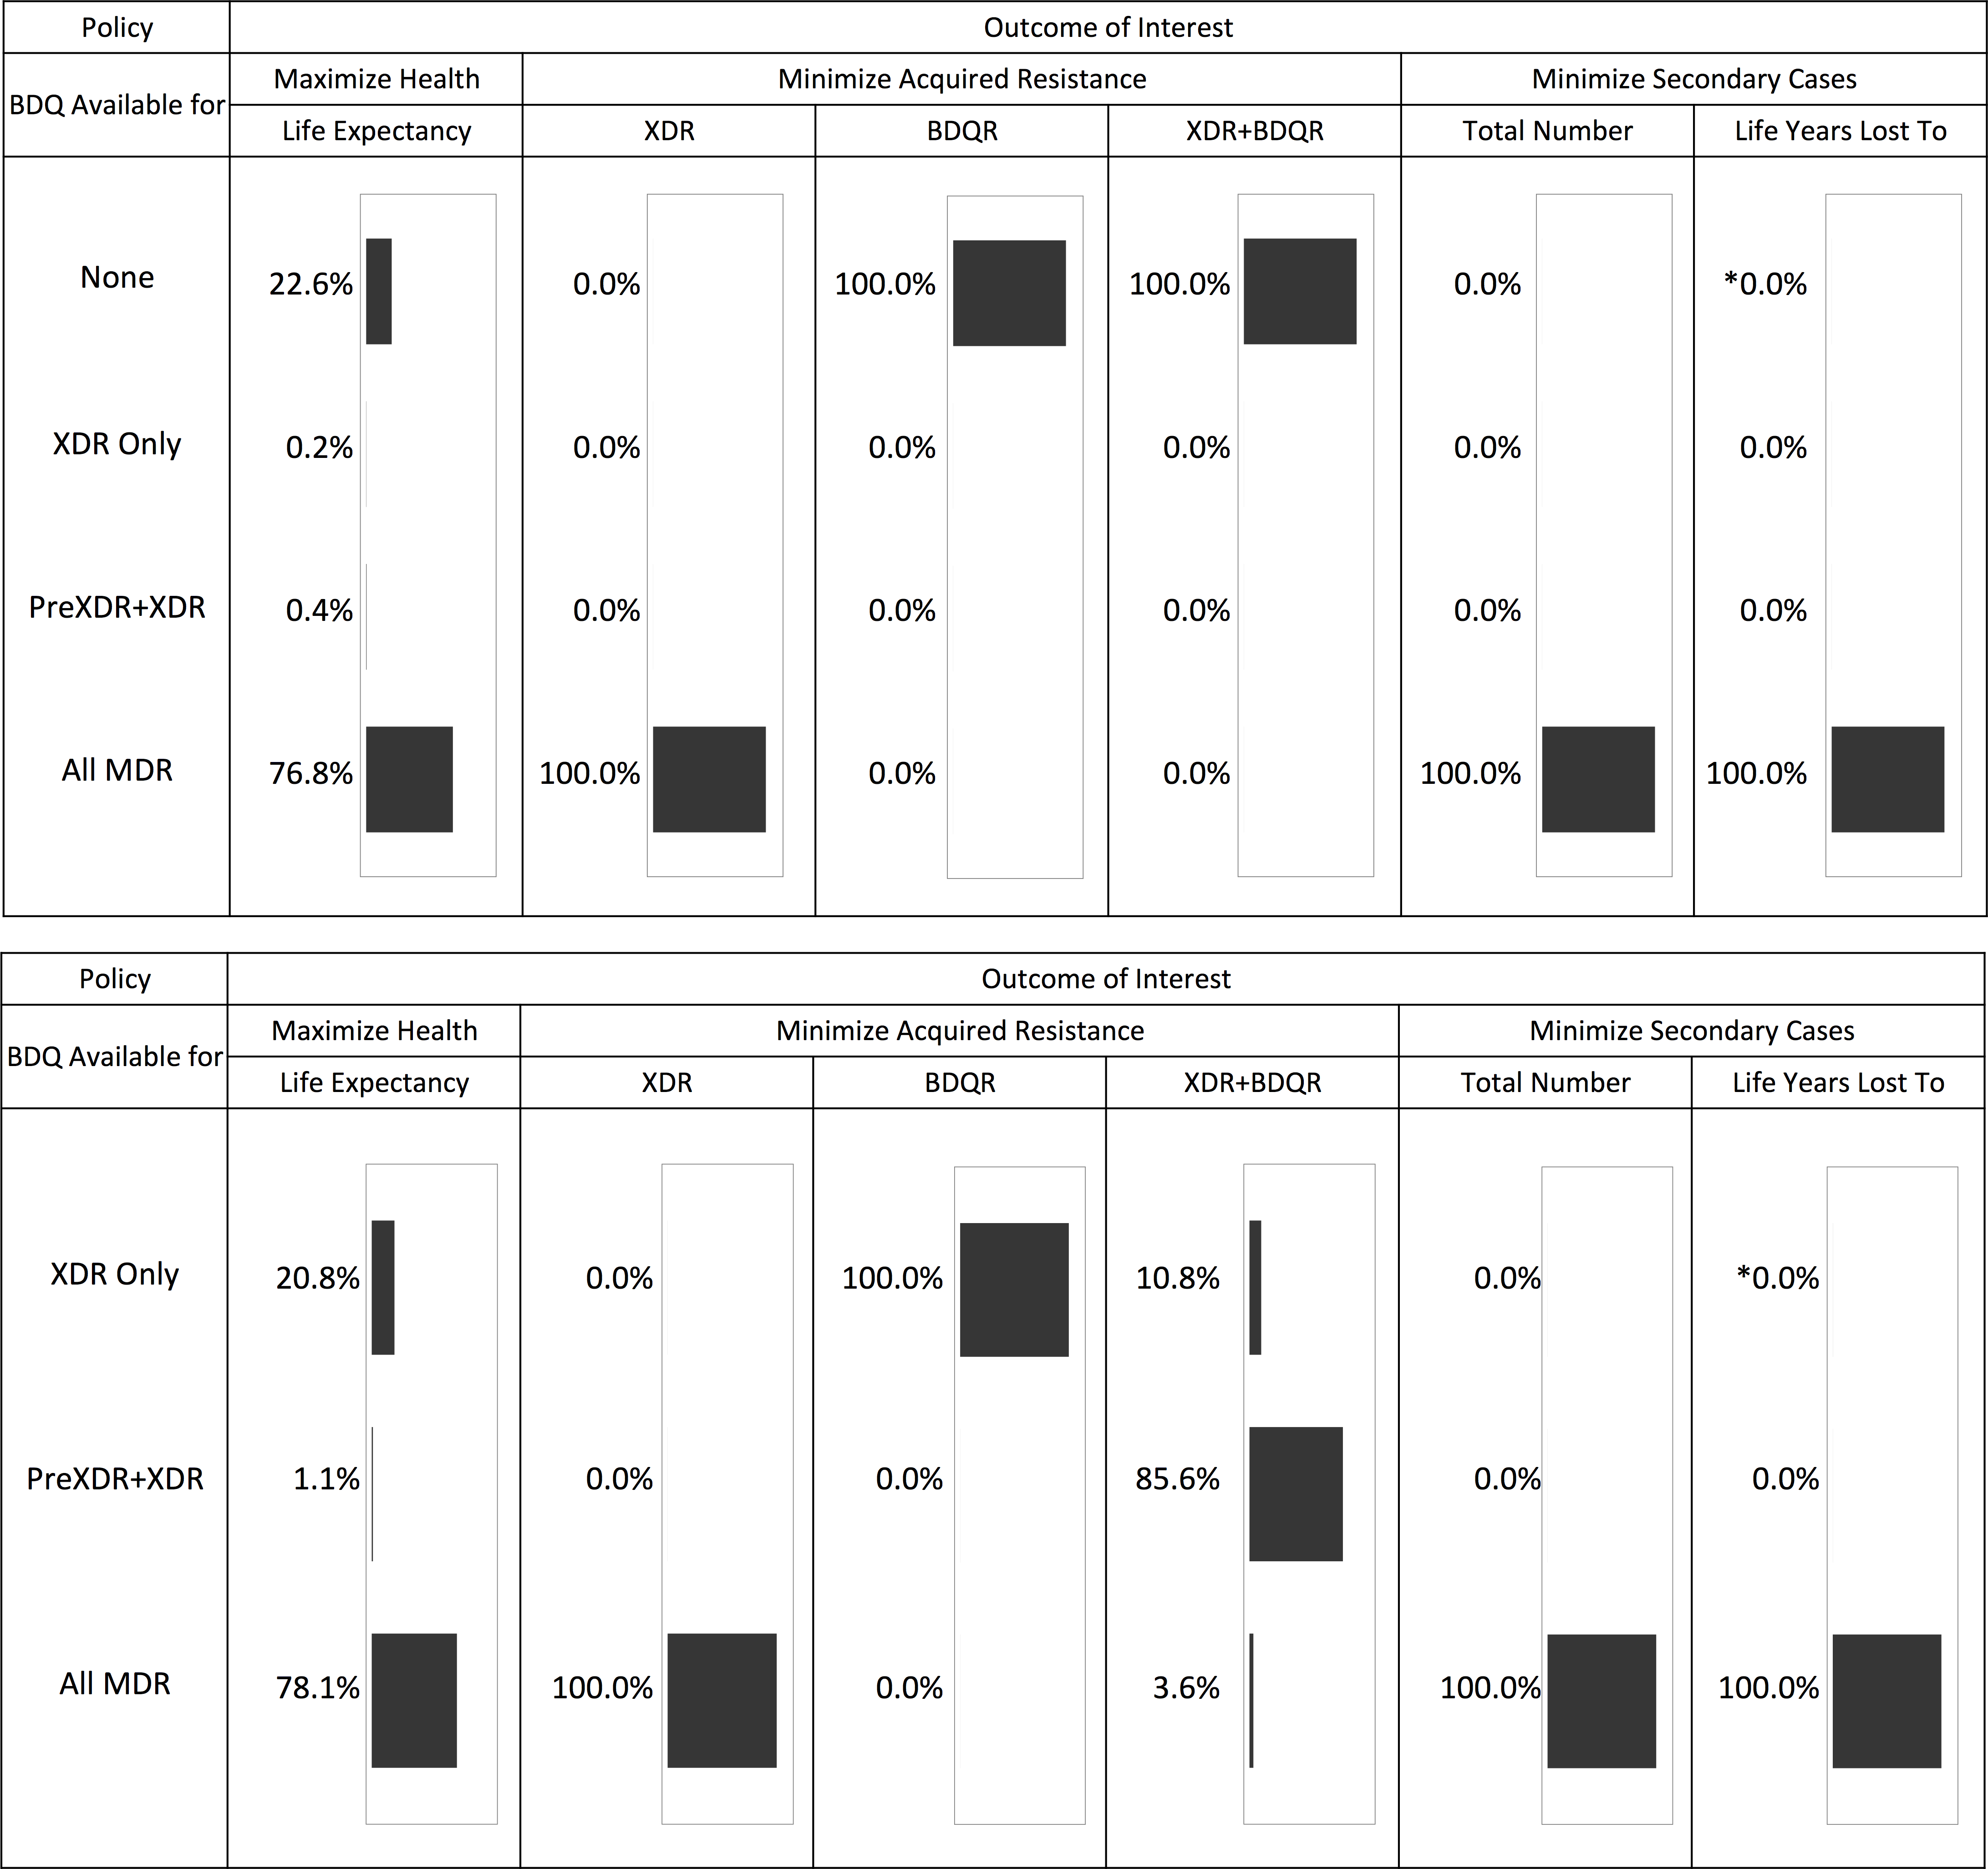 Optimal bedaquiline use strategy for different outcomes based on 5,000 simulation runs.